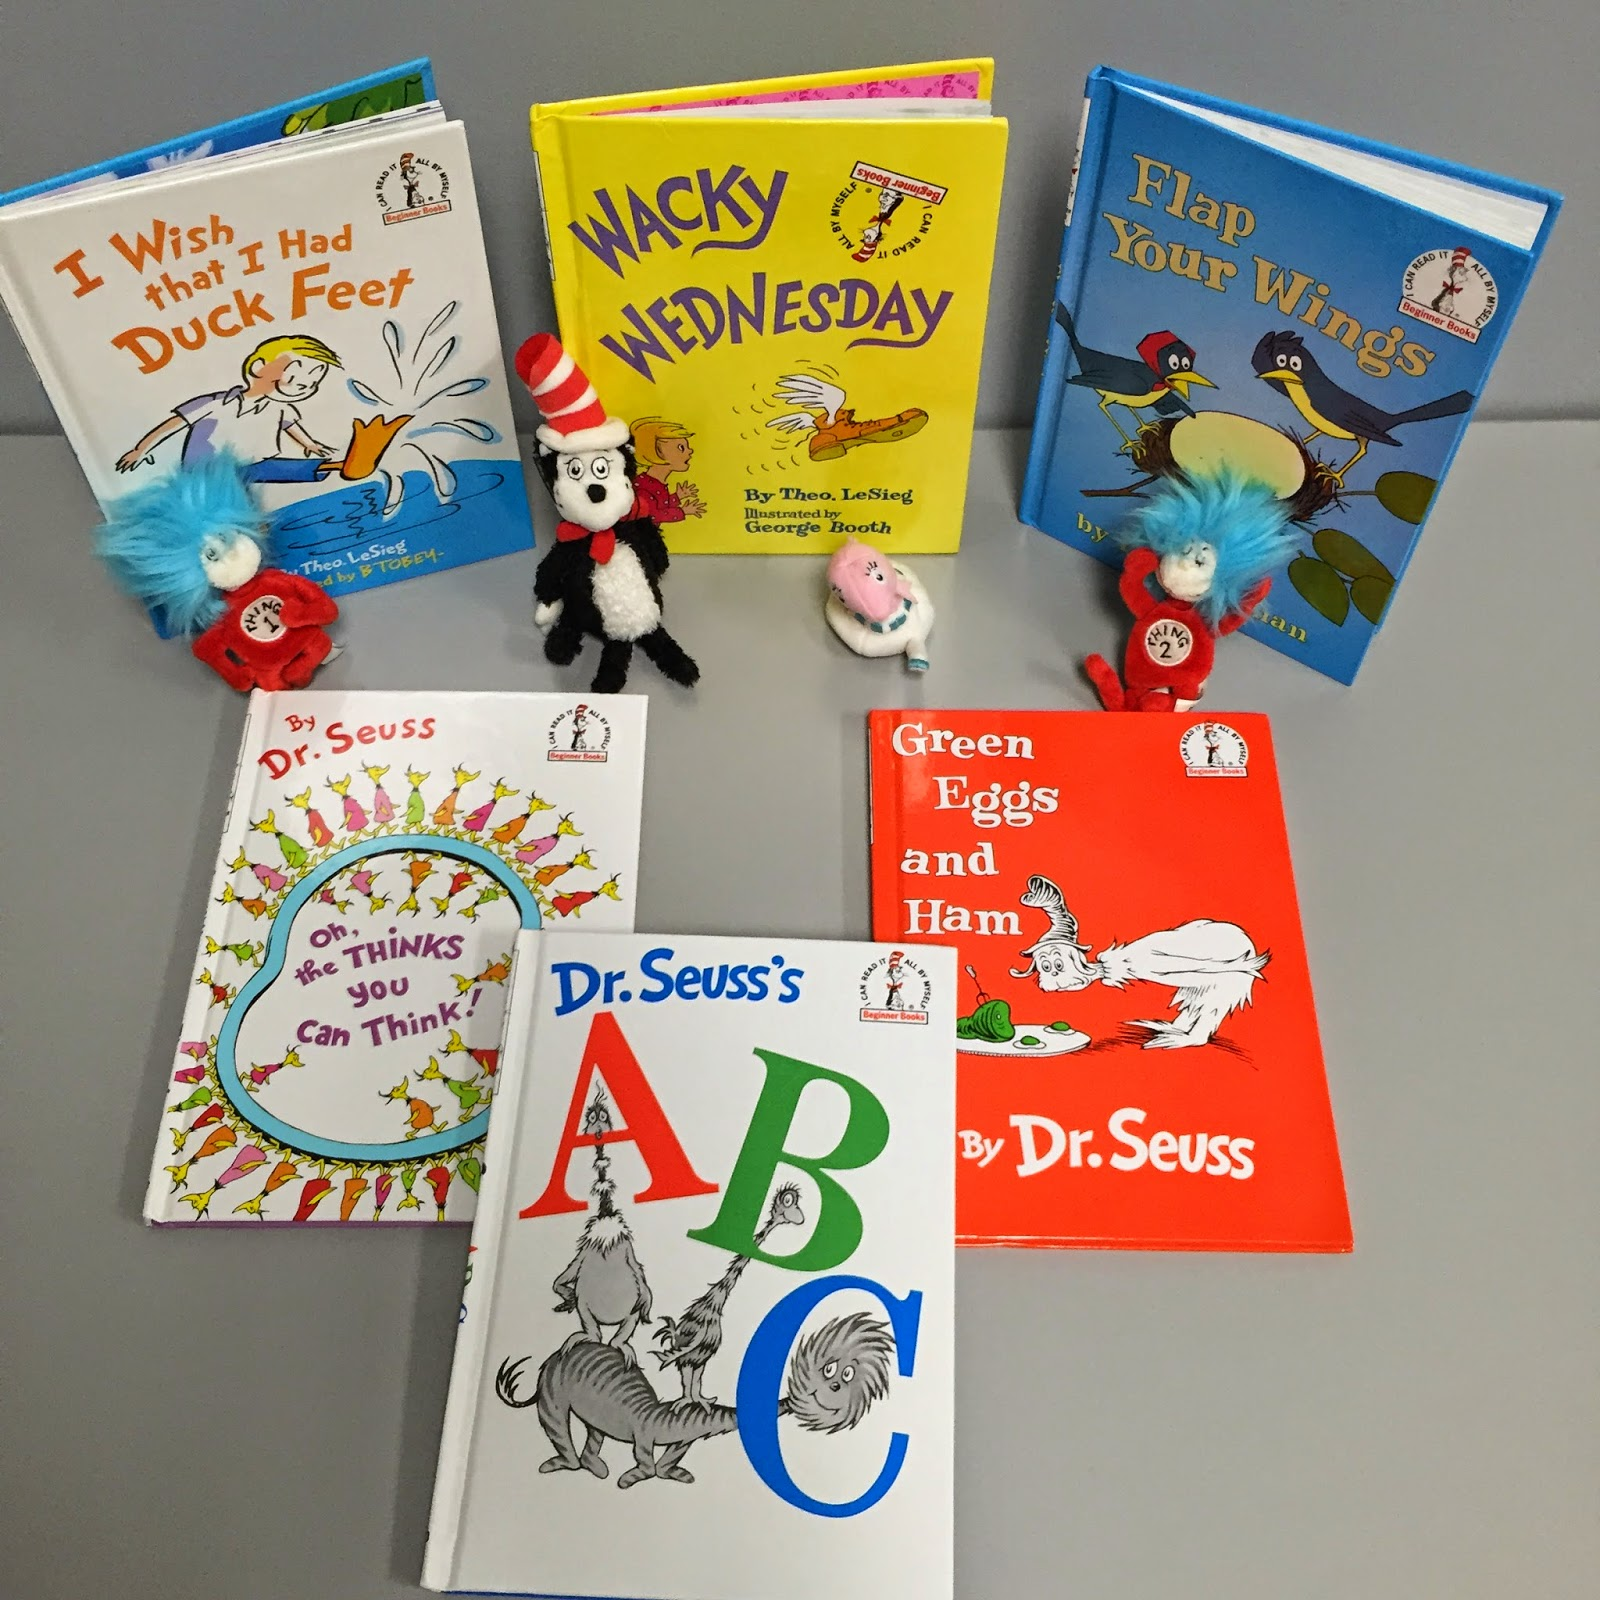 Dr Seuss Quotes Oh The Thinks You Can Think: Family Resource Center For Eau Claire County, Inc.: Toy